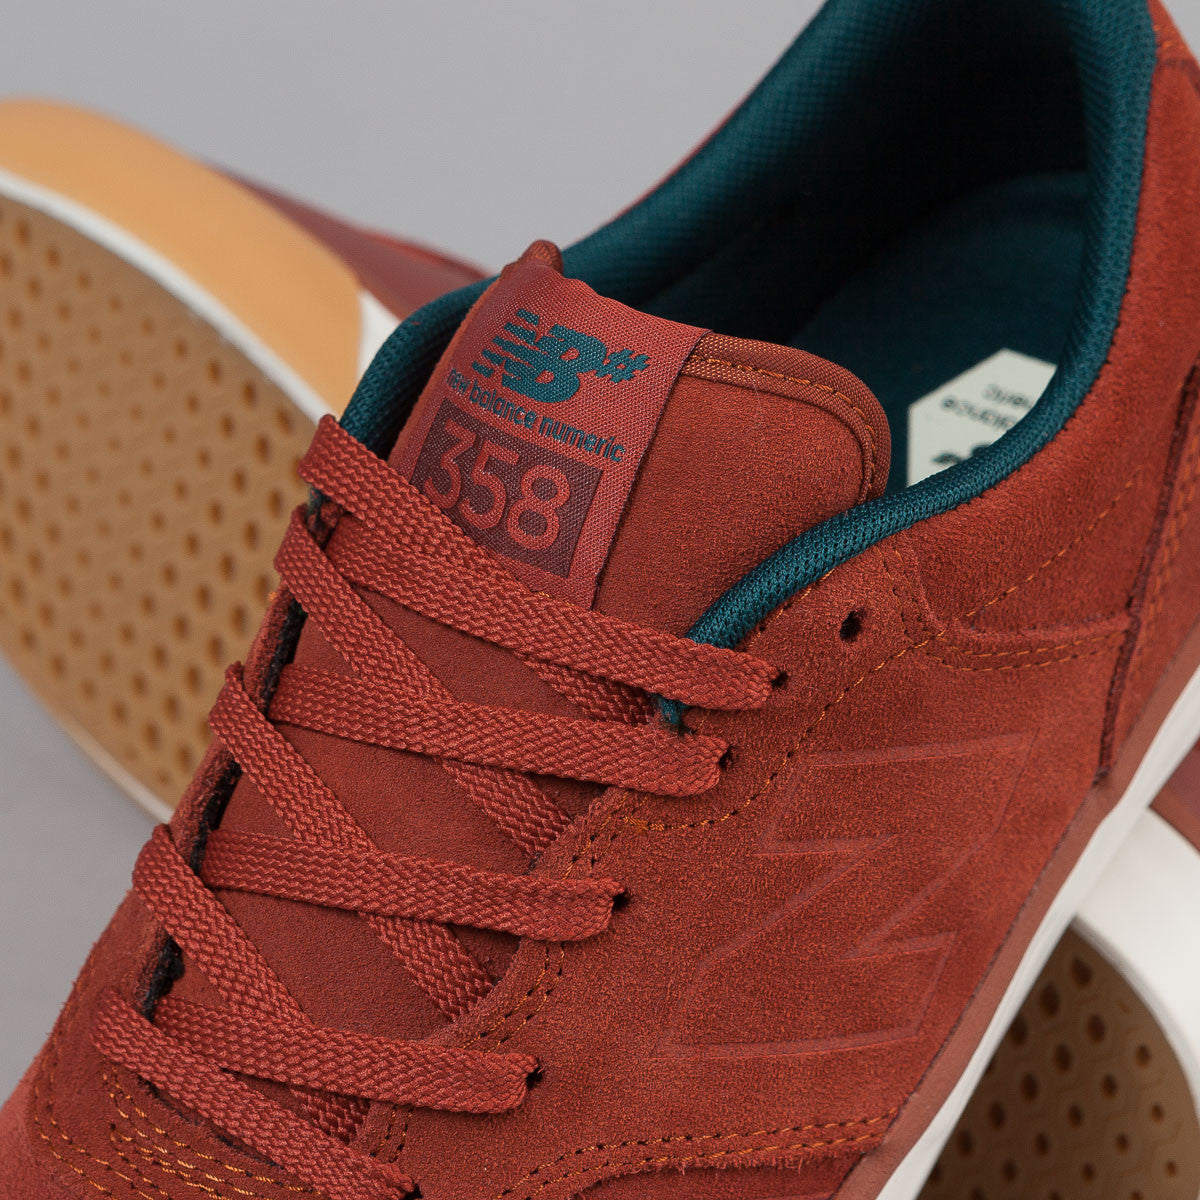 New Balance Numeric Arto 358 Shoes - Rust